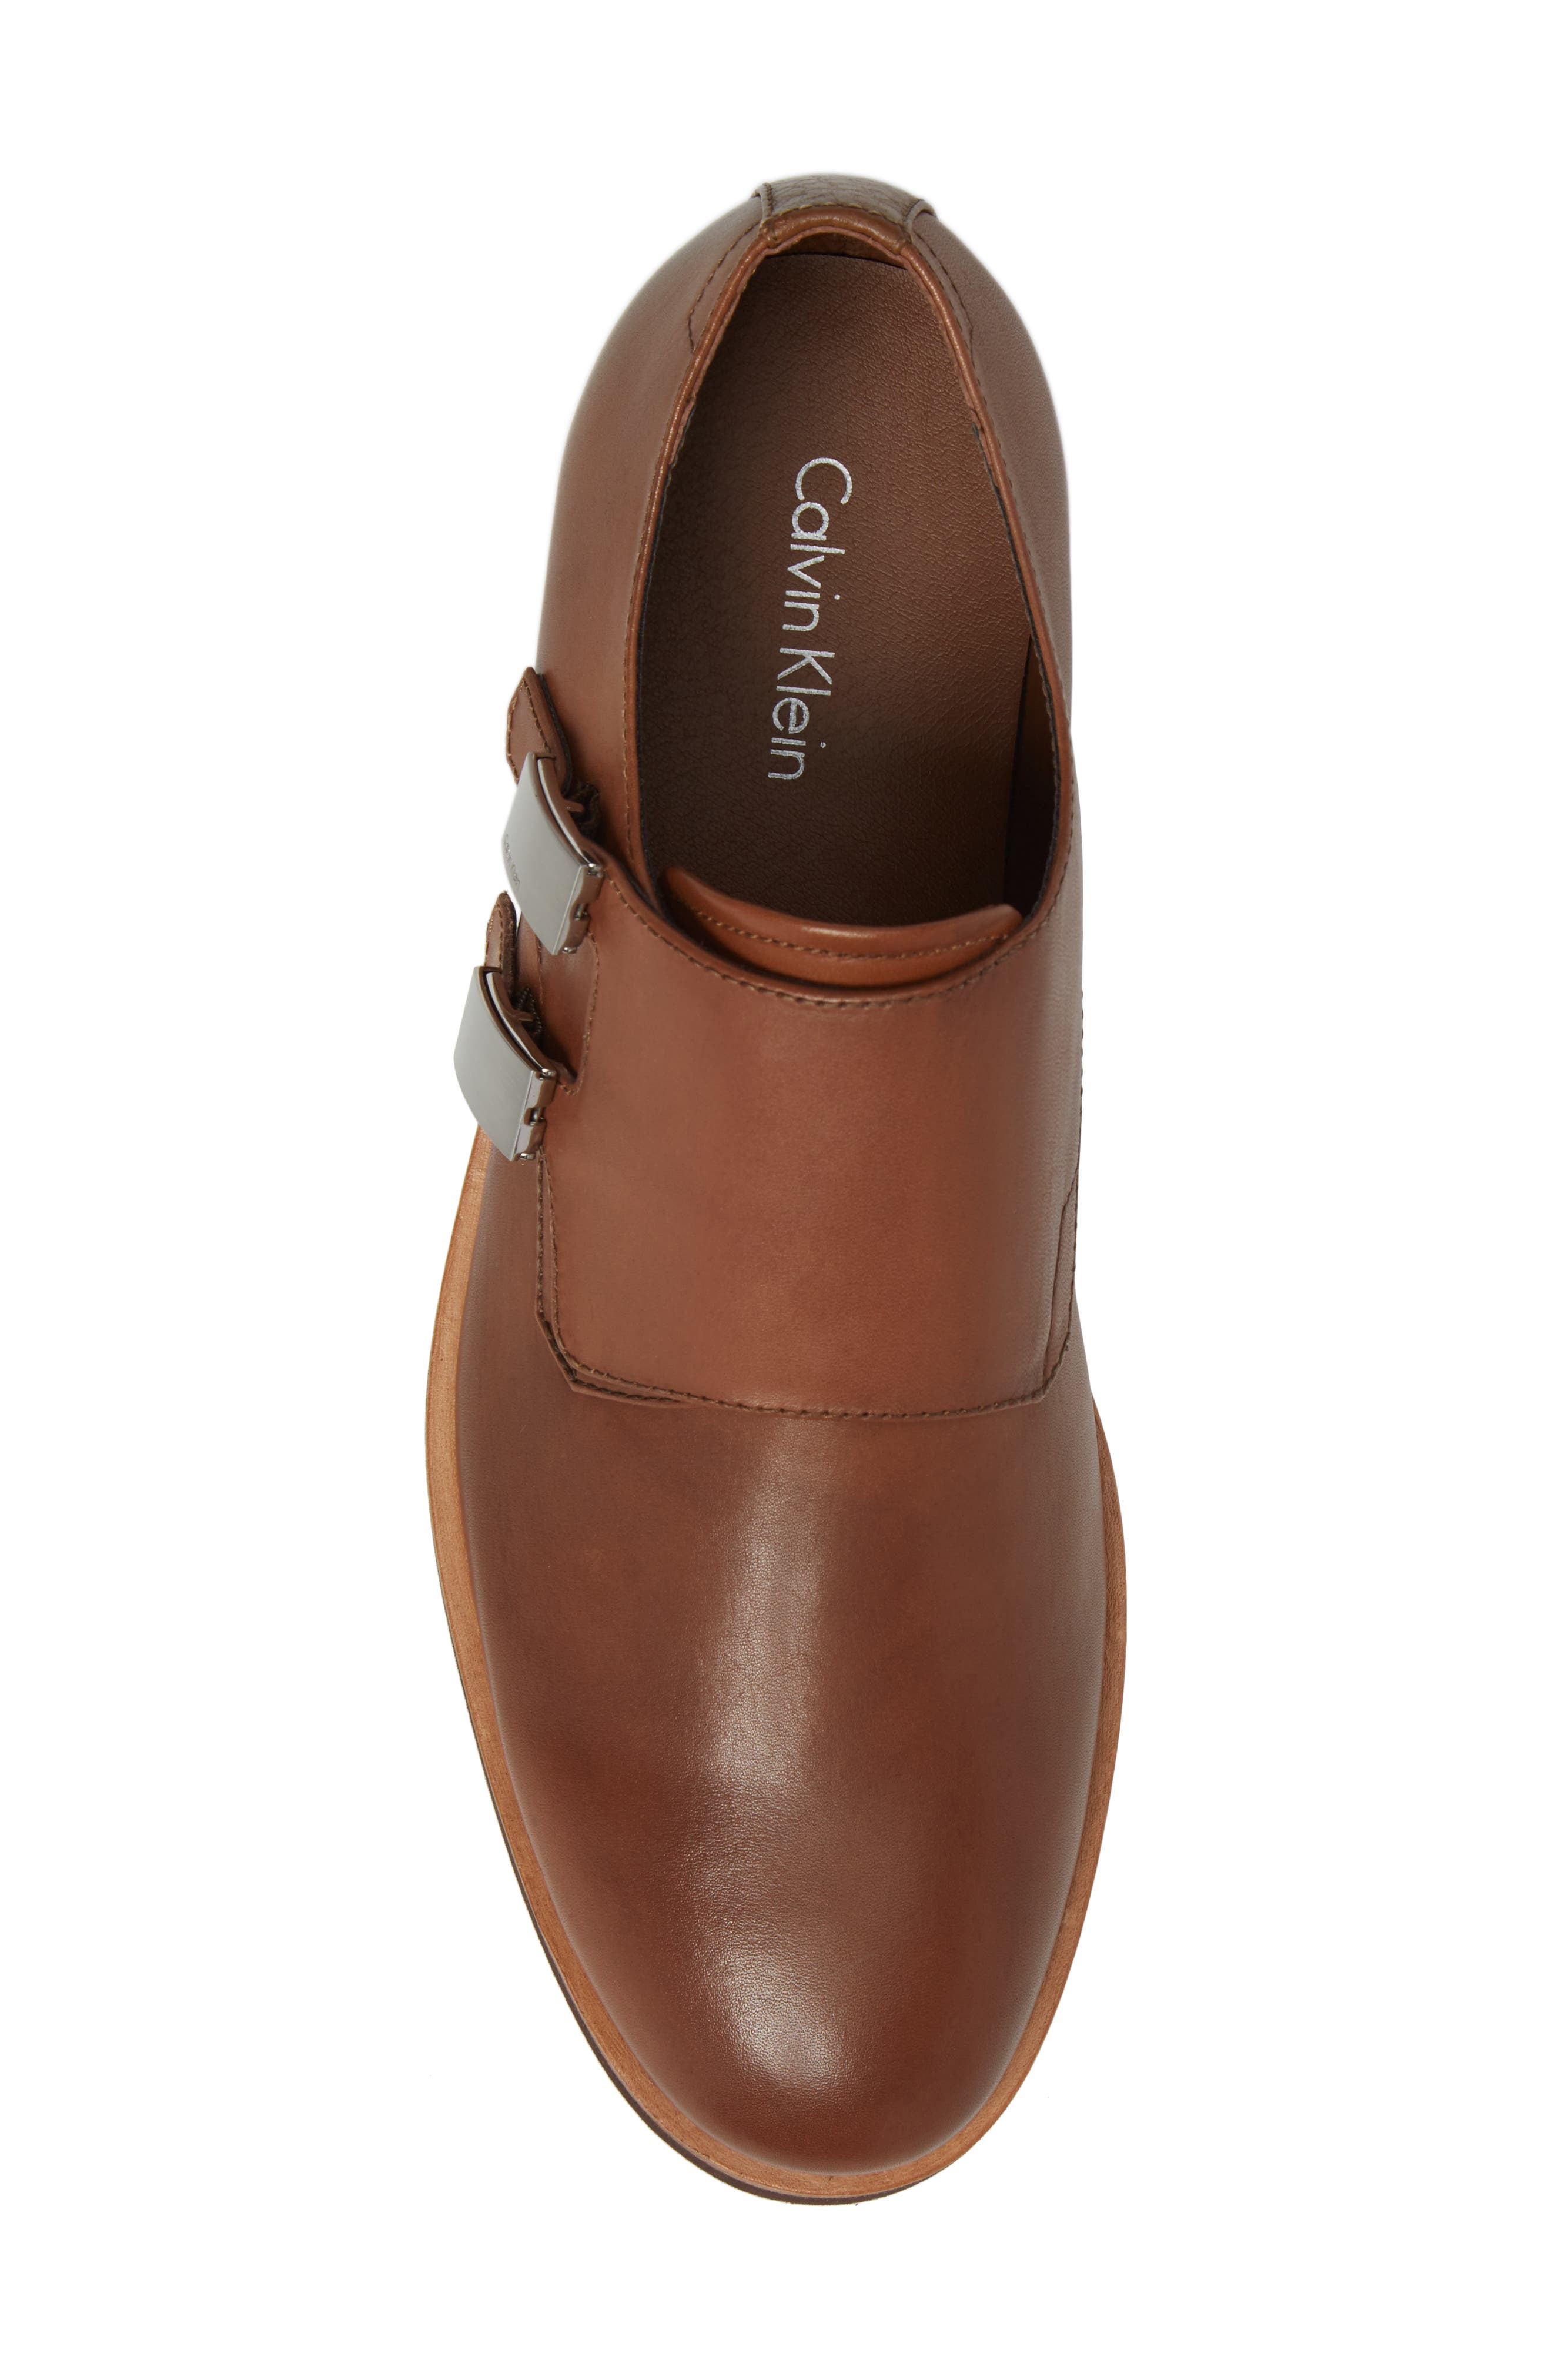 Finnegan Double Monk Strap Shoe,                             Alternate thumbnail 10, color,